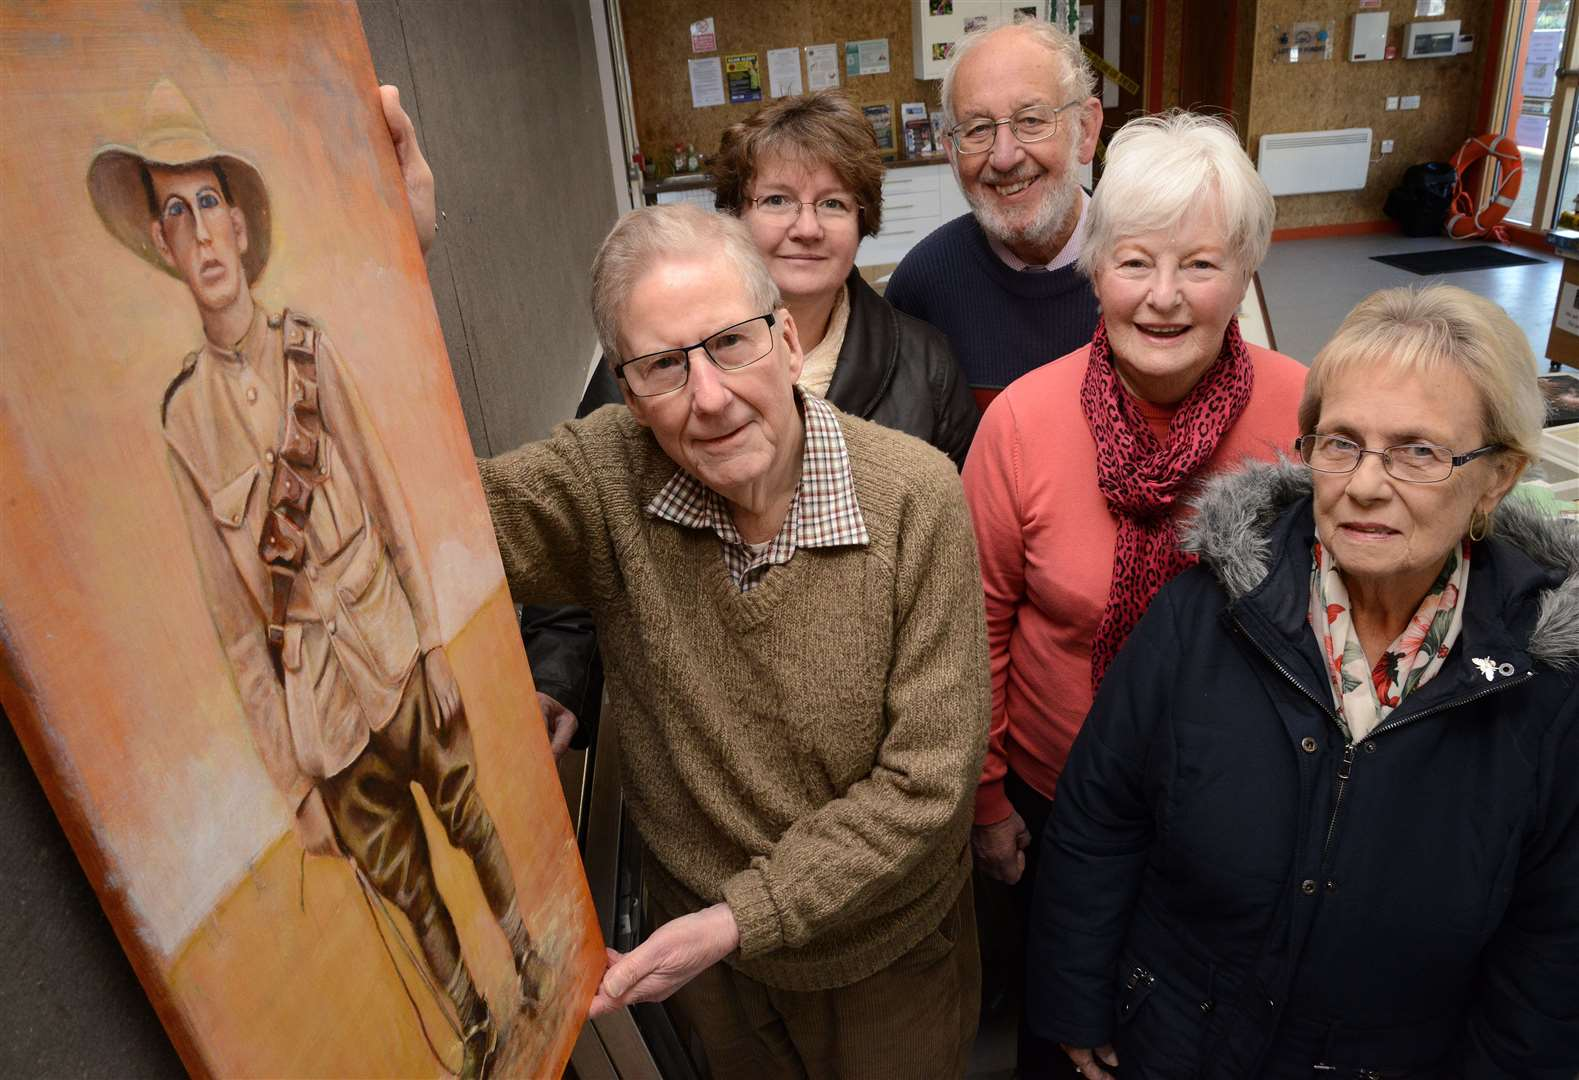 Grantham Art Club sets up exhibition in Wyndham Park